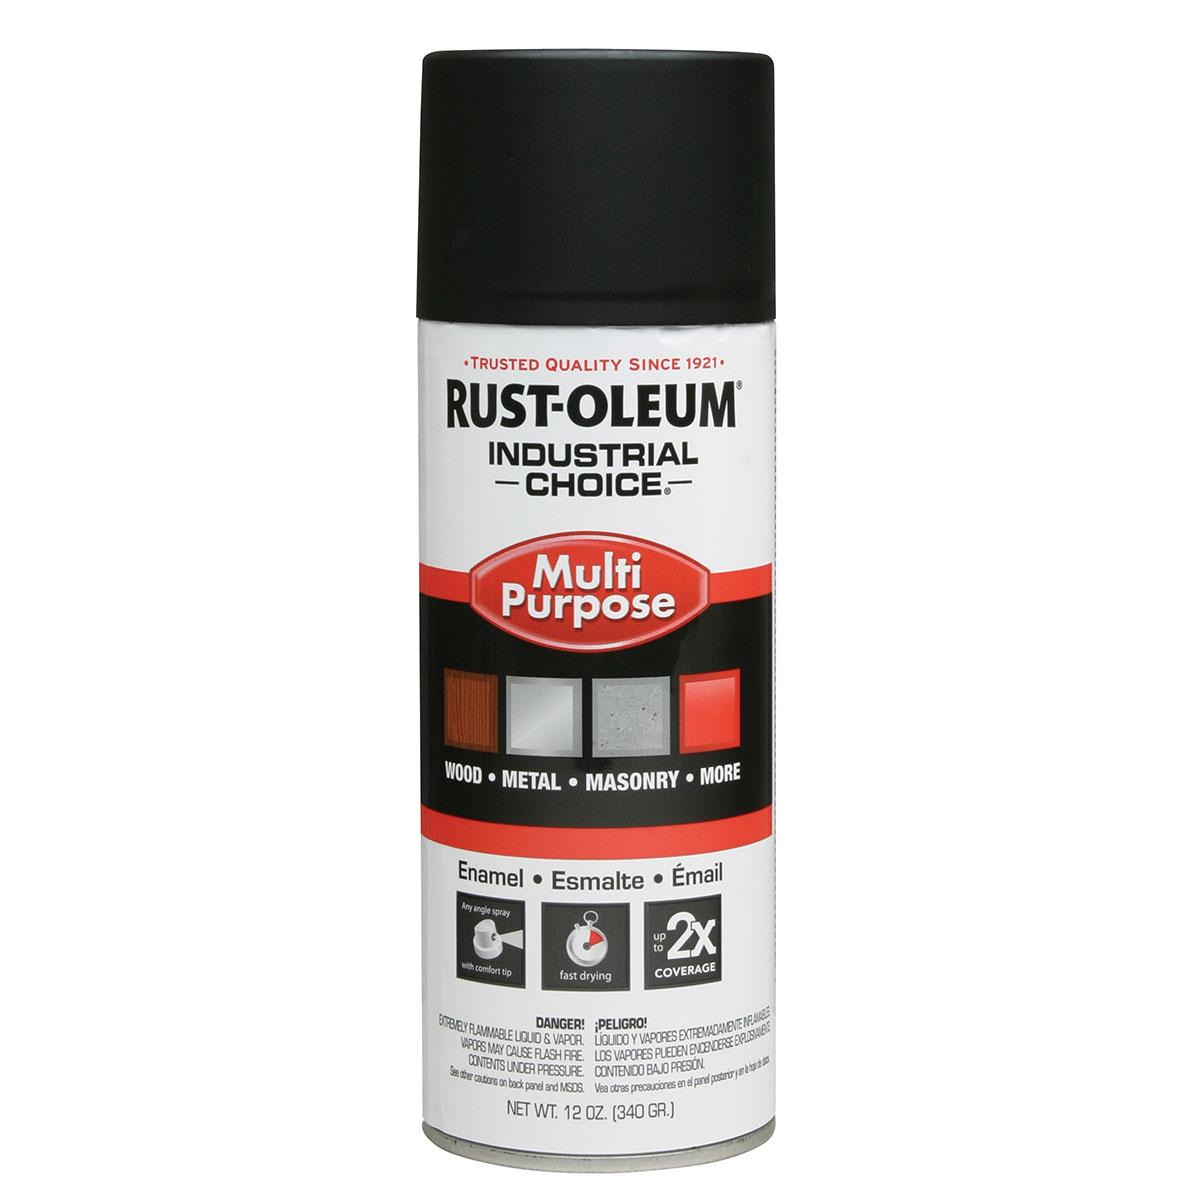 Rust-Oleum Spray Paint: Black, Ultra Flat, 1 hr Dry Time, 12 to 15 sq ft, 12 fl oz Container Size